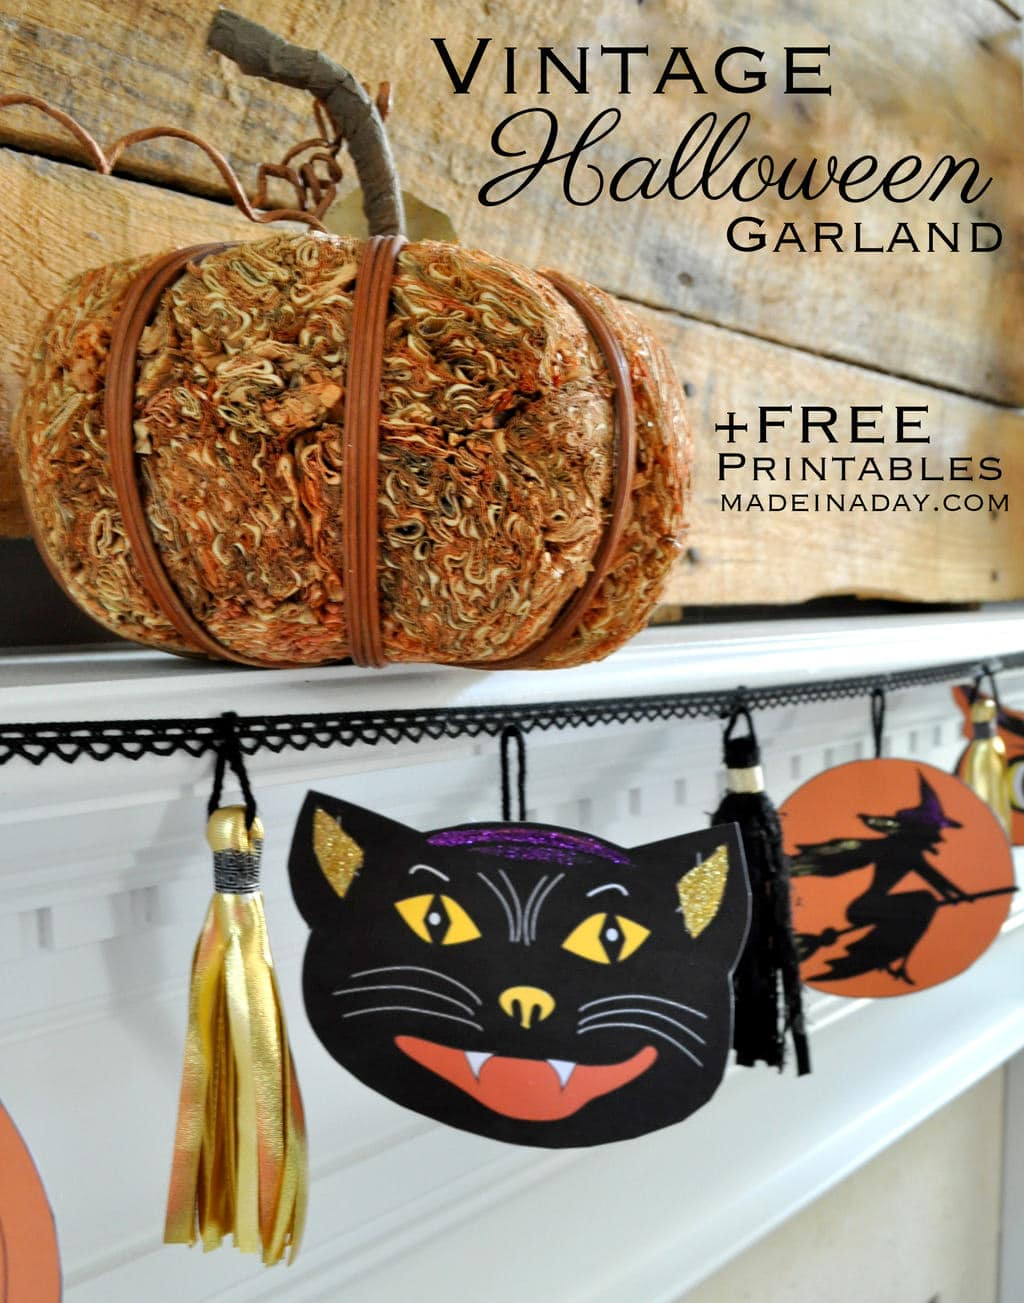 It's just a picture of Clean Vintage Halloween Printable